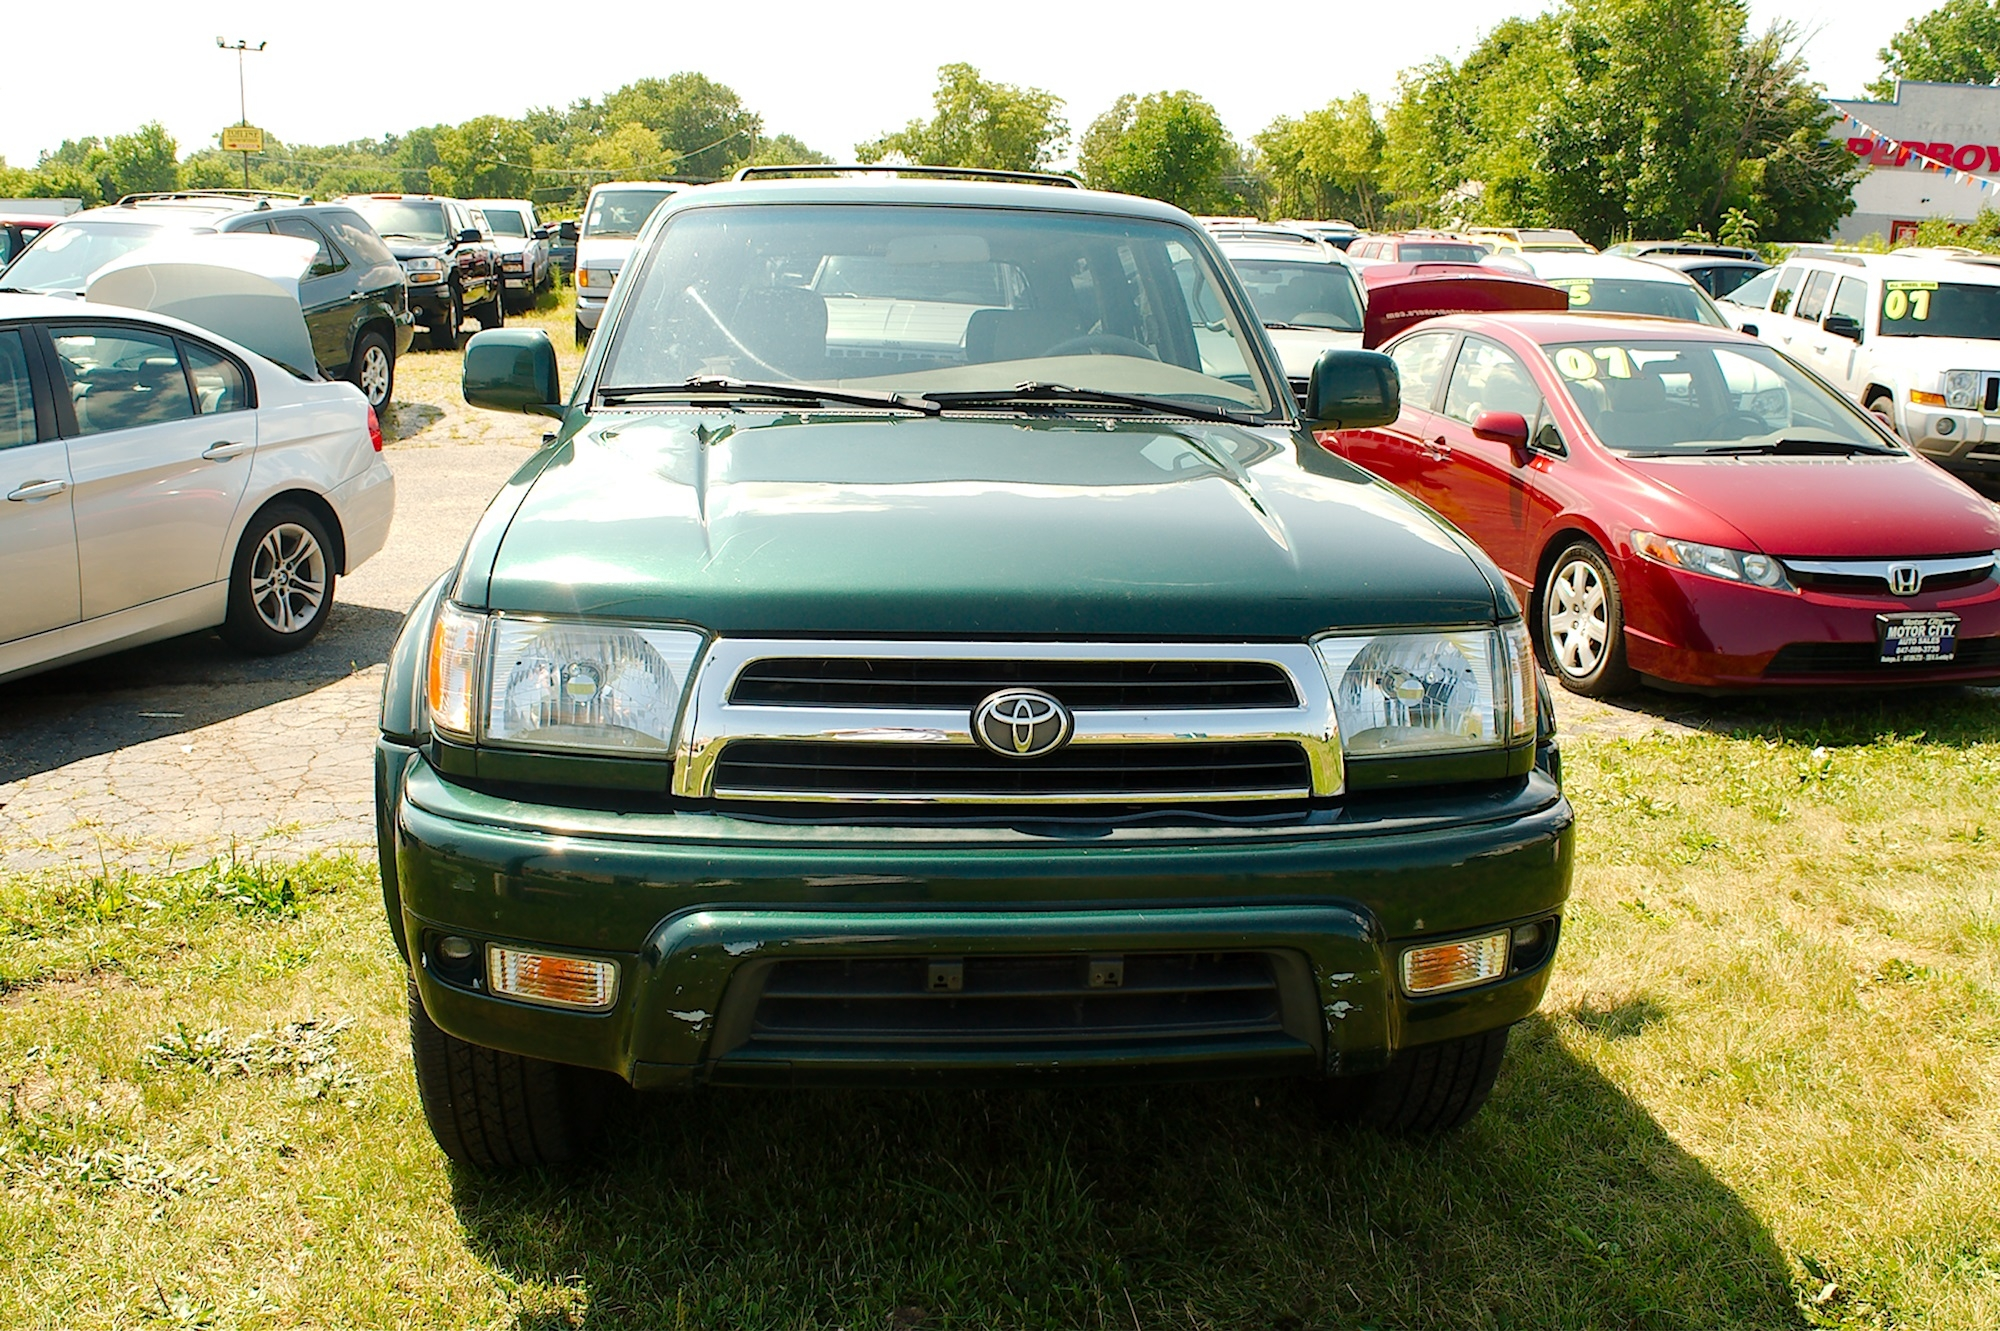 1999 Toyota 4Runner Green 4X4 Limited SUV Sale Gurnee Kenosha Mchenry Chicago Illinois